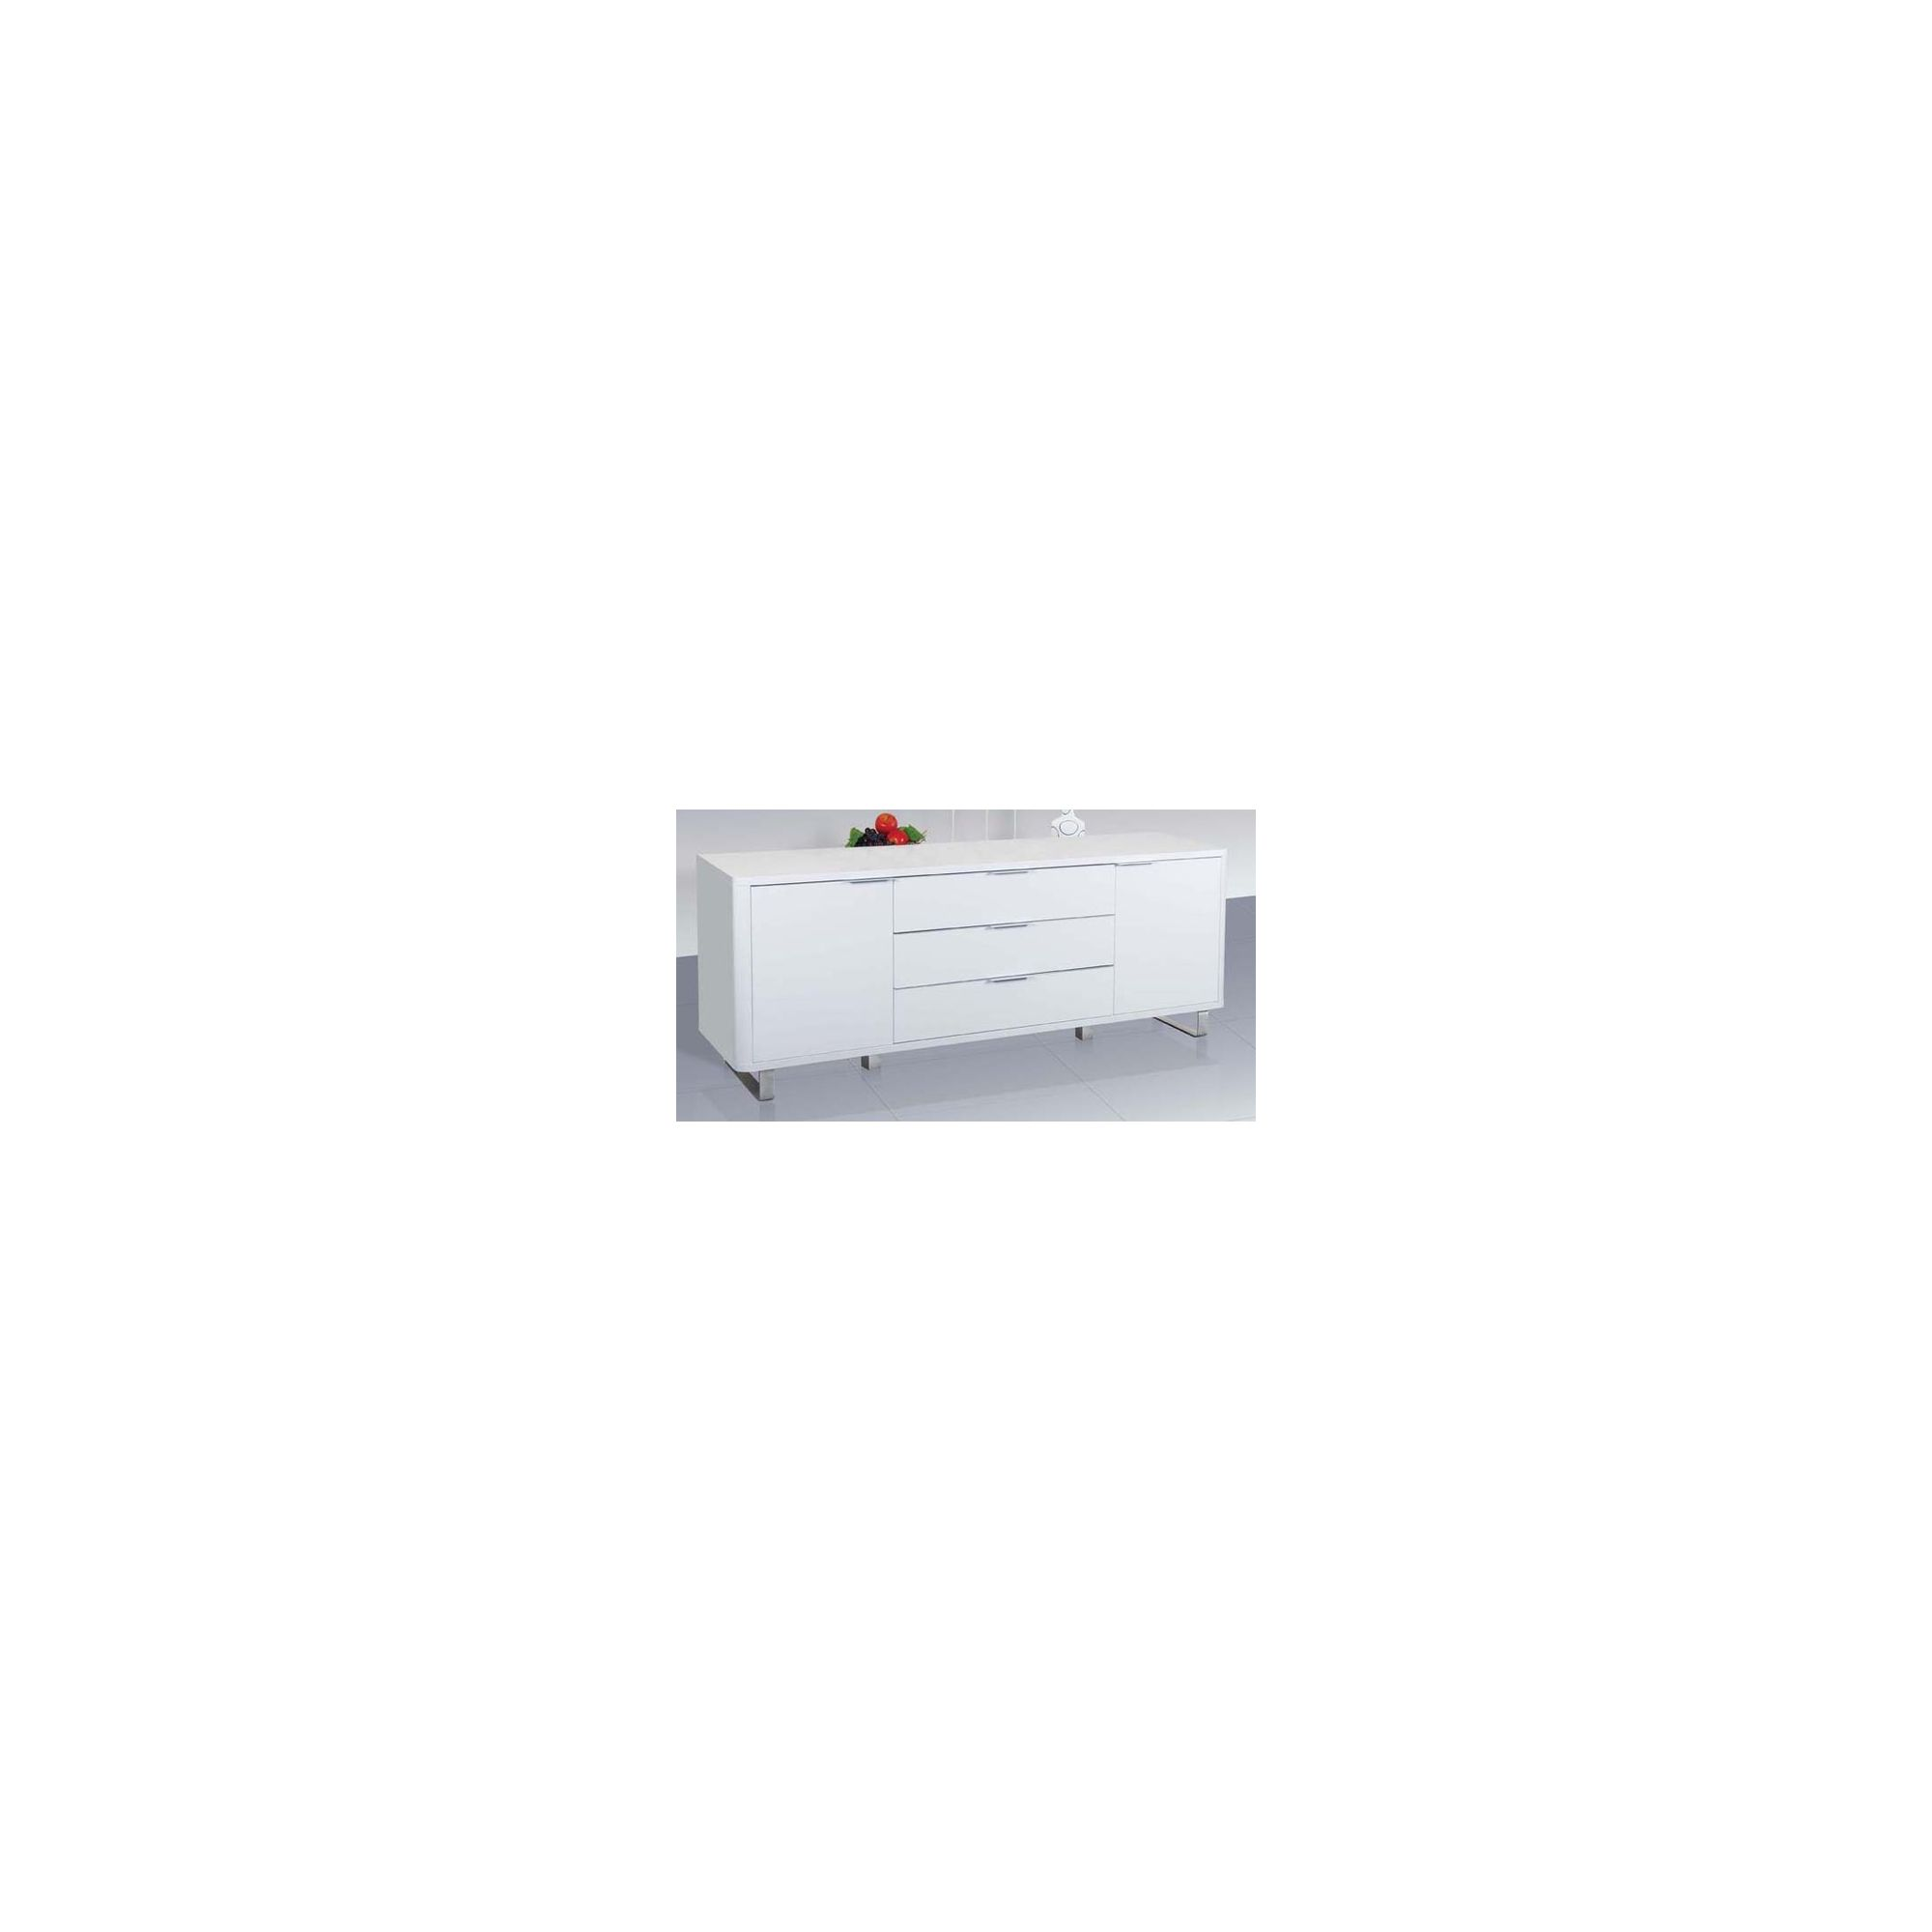 Home Zone Accent Sideboard - White at Tescos Direct